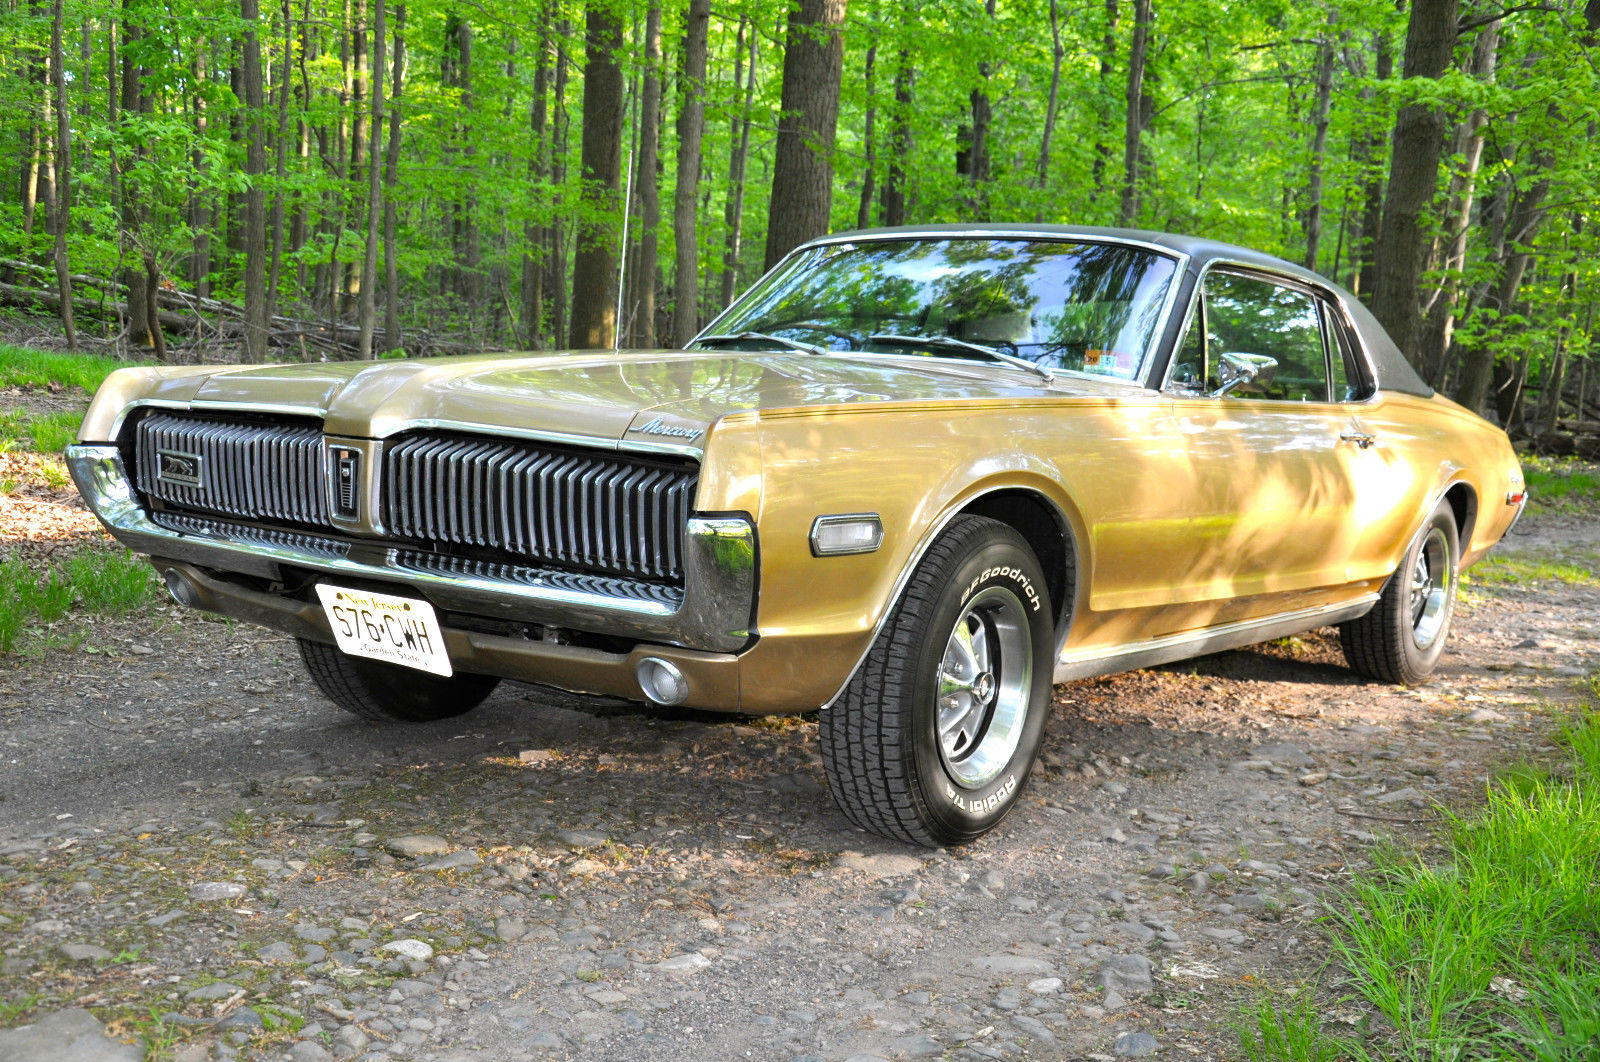 1968 Mercury Cougar XR-7 5.0L2